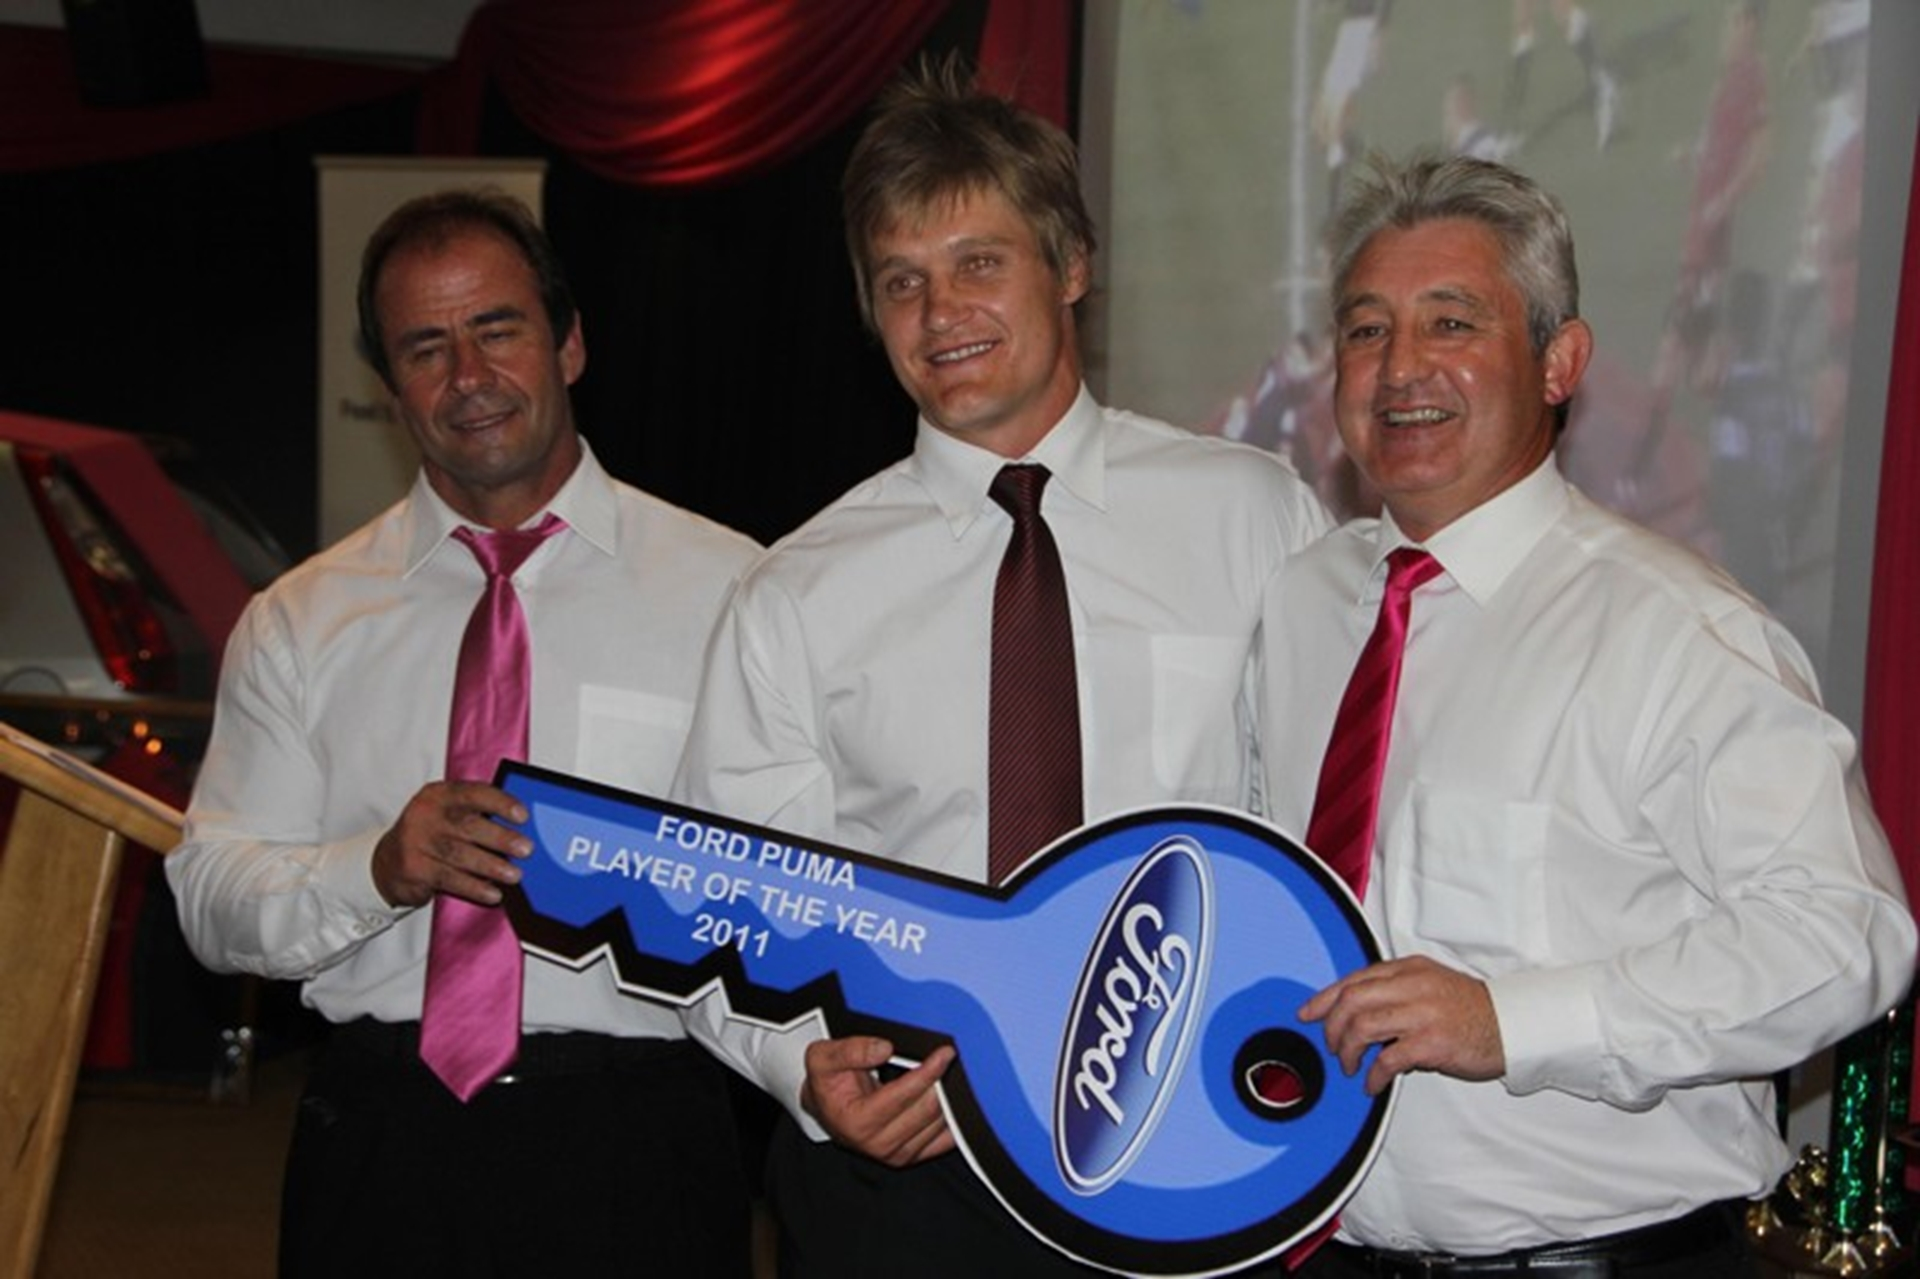 ford-puma-rugby-player-of-the-year